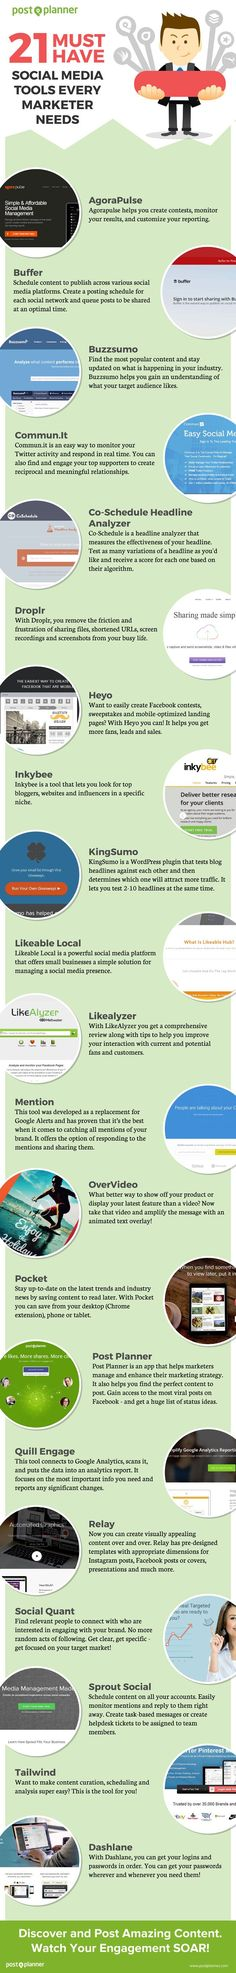 Using the right social media tools for marketing your business to increase your following.